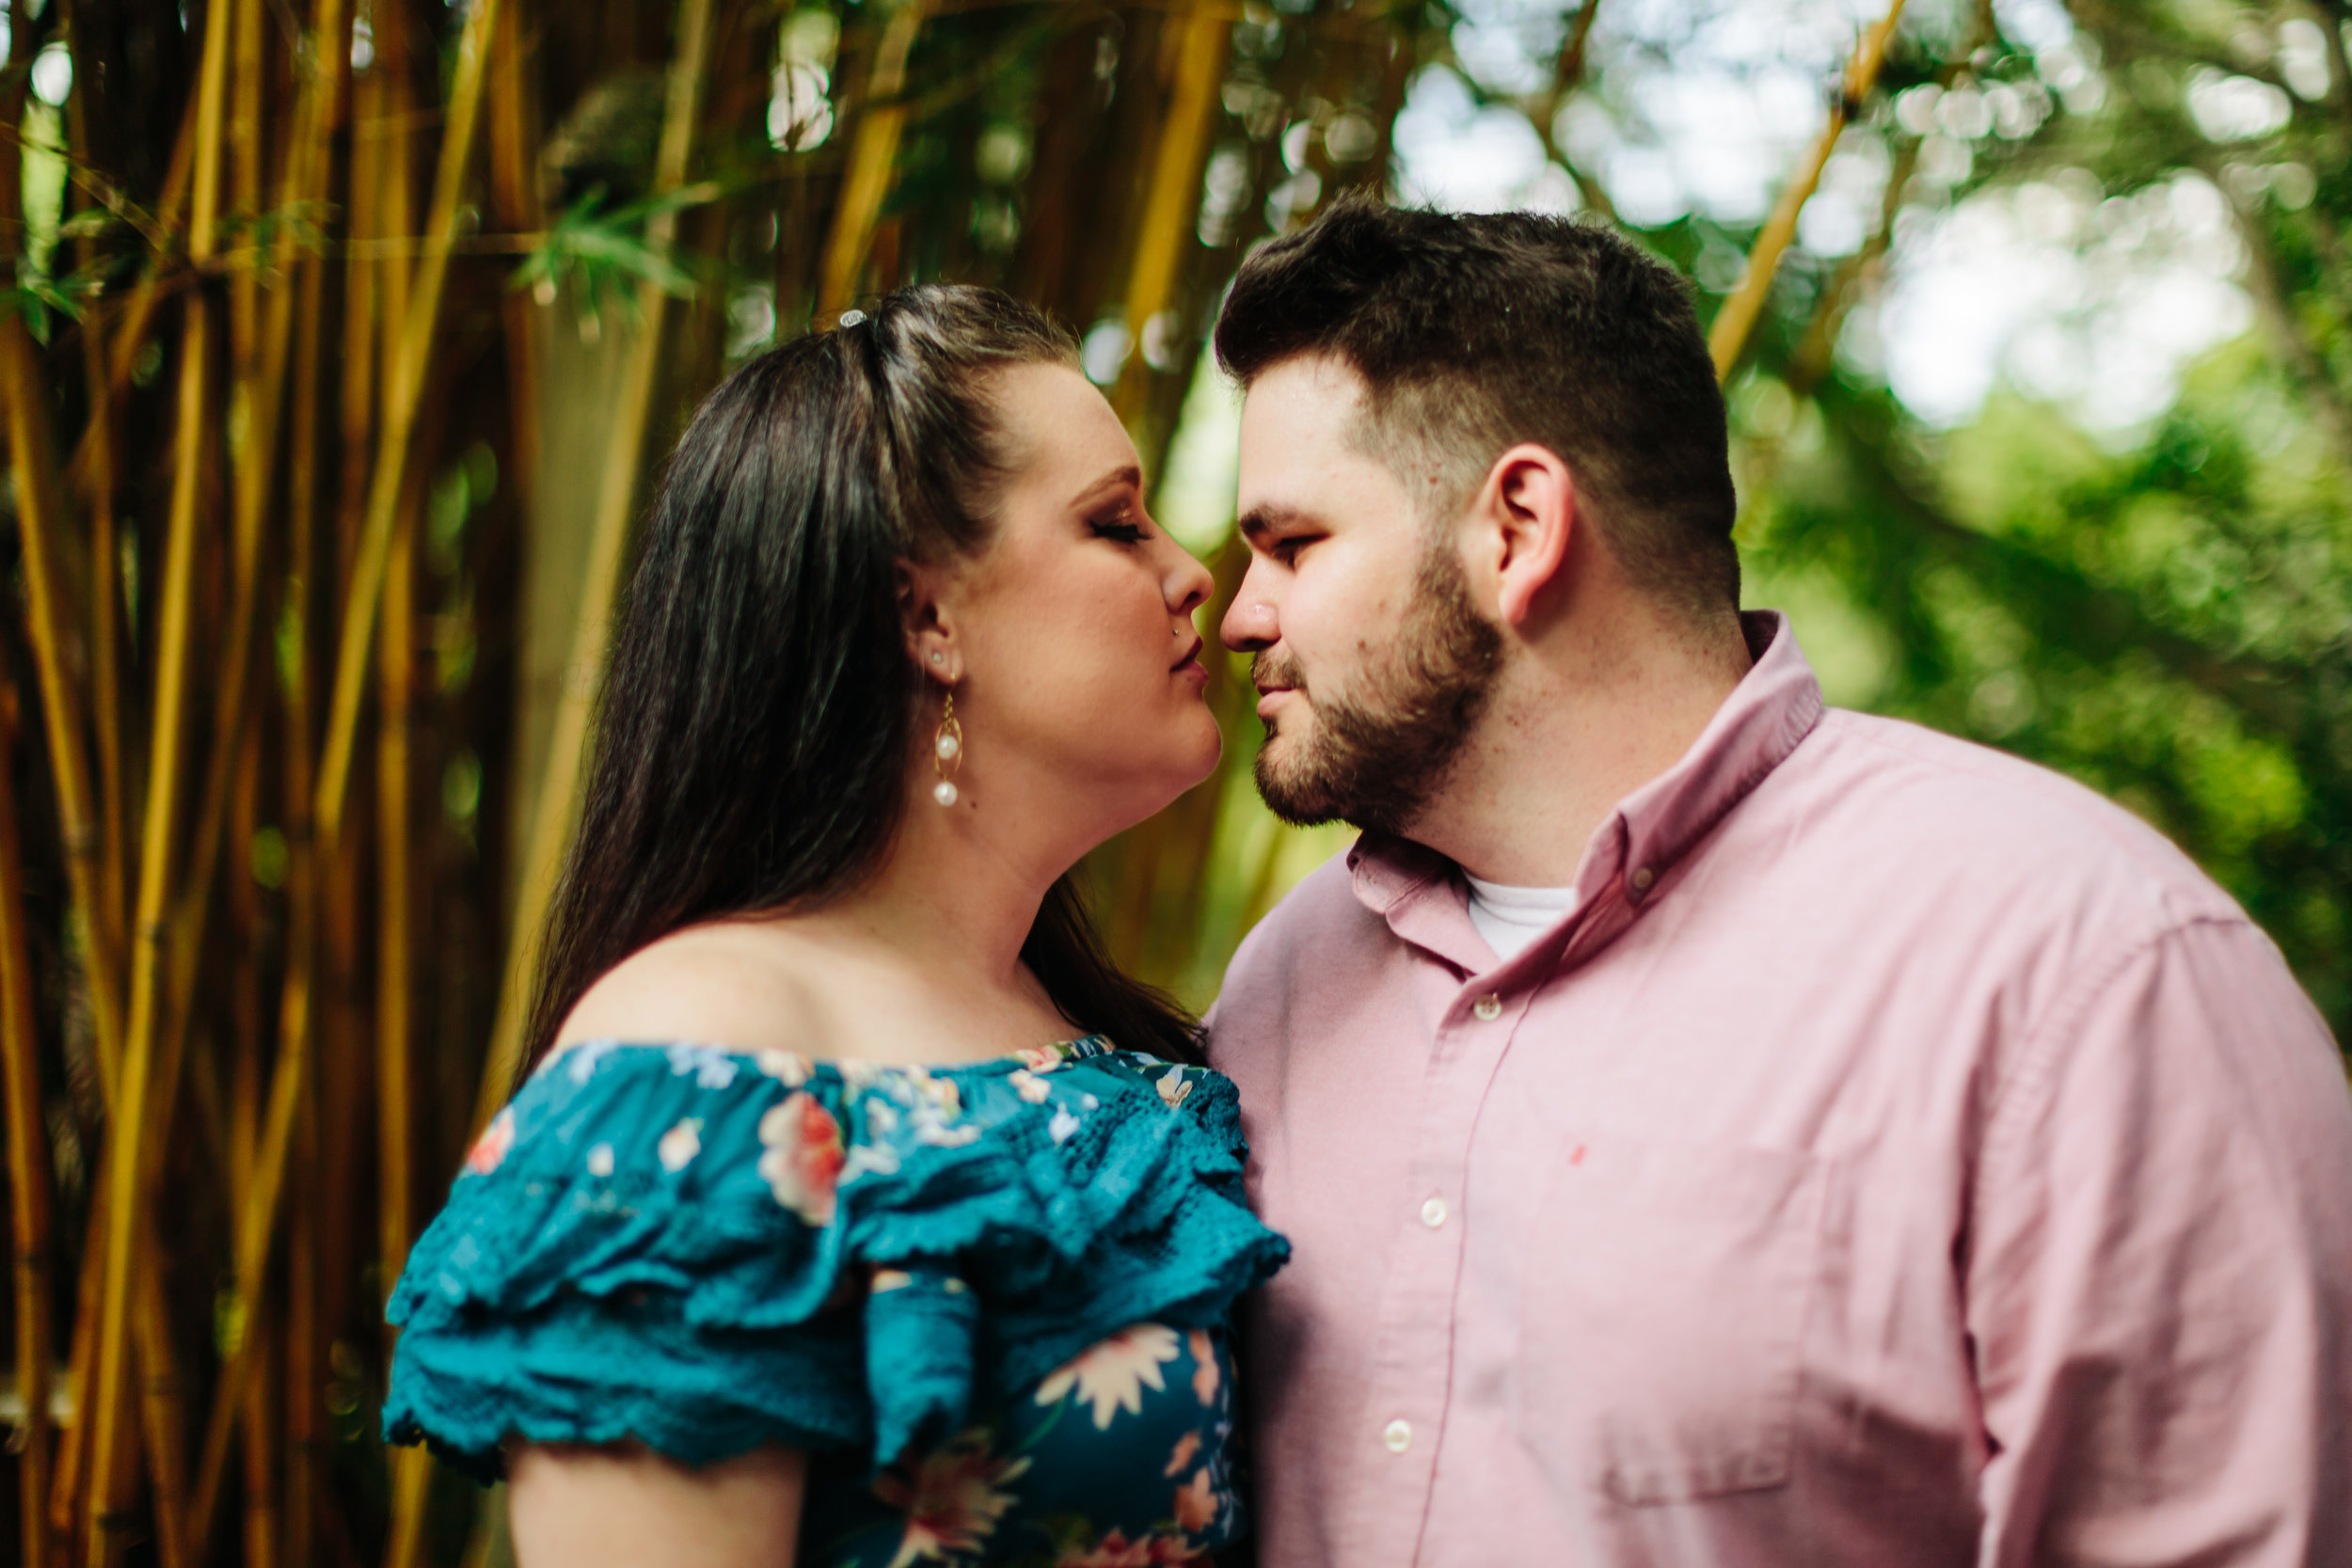 2018.05.01 Ashleigh and Nathan Brevard Zoo Engagement Session-31.jpg